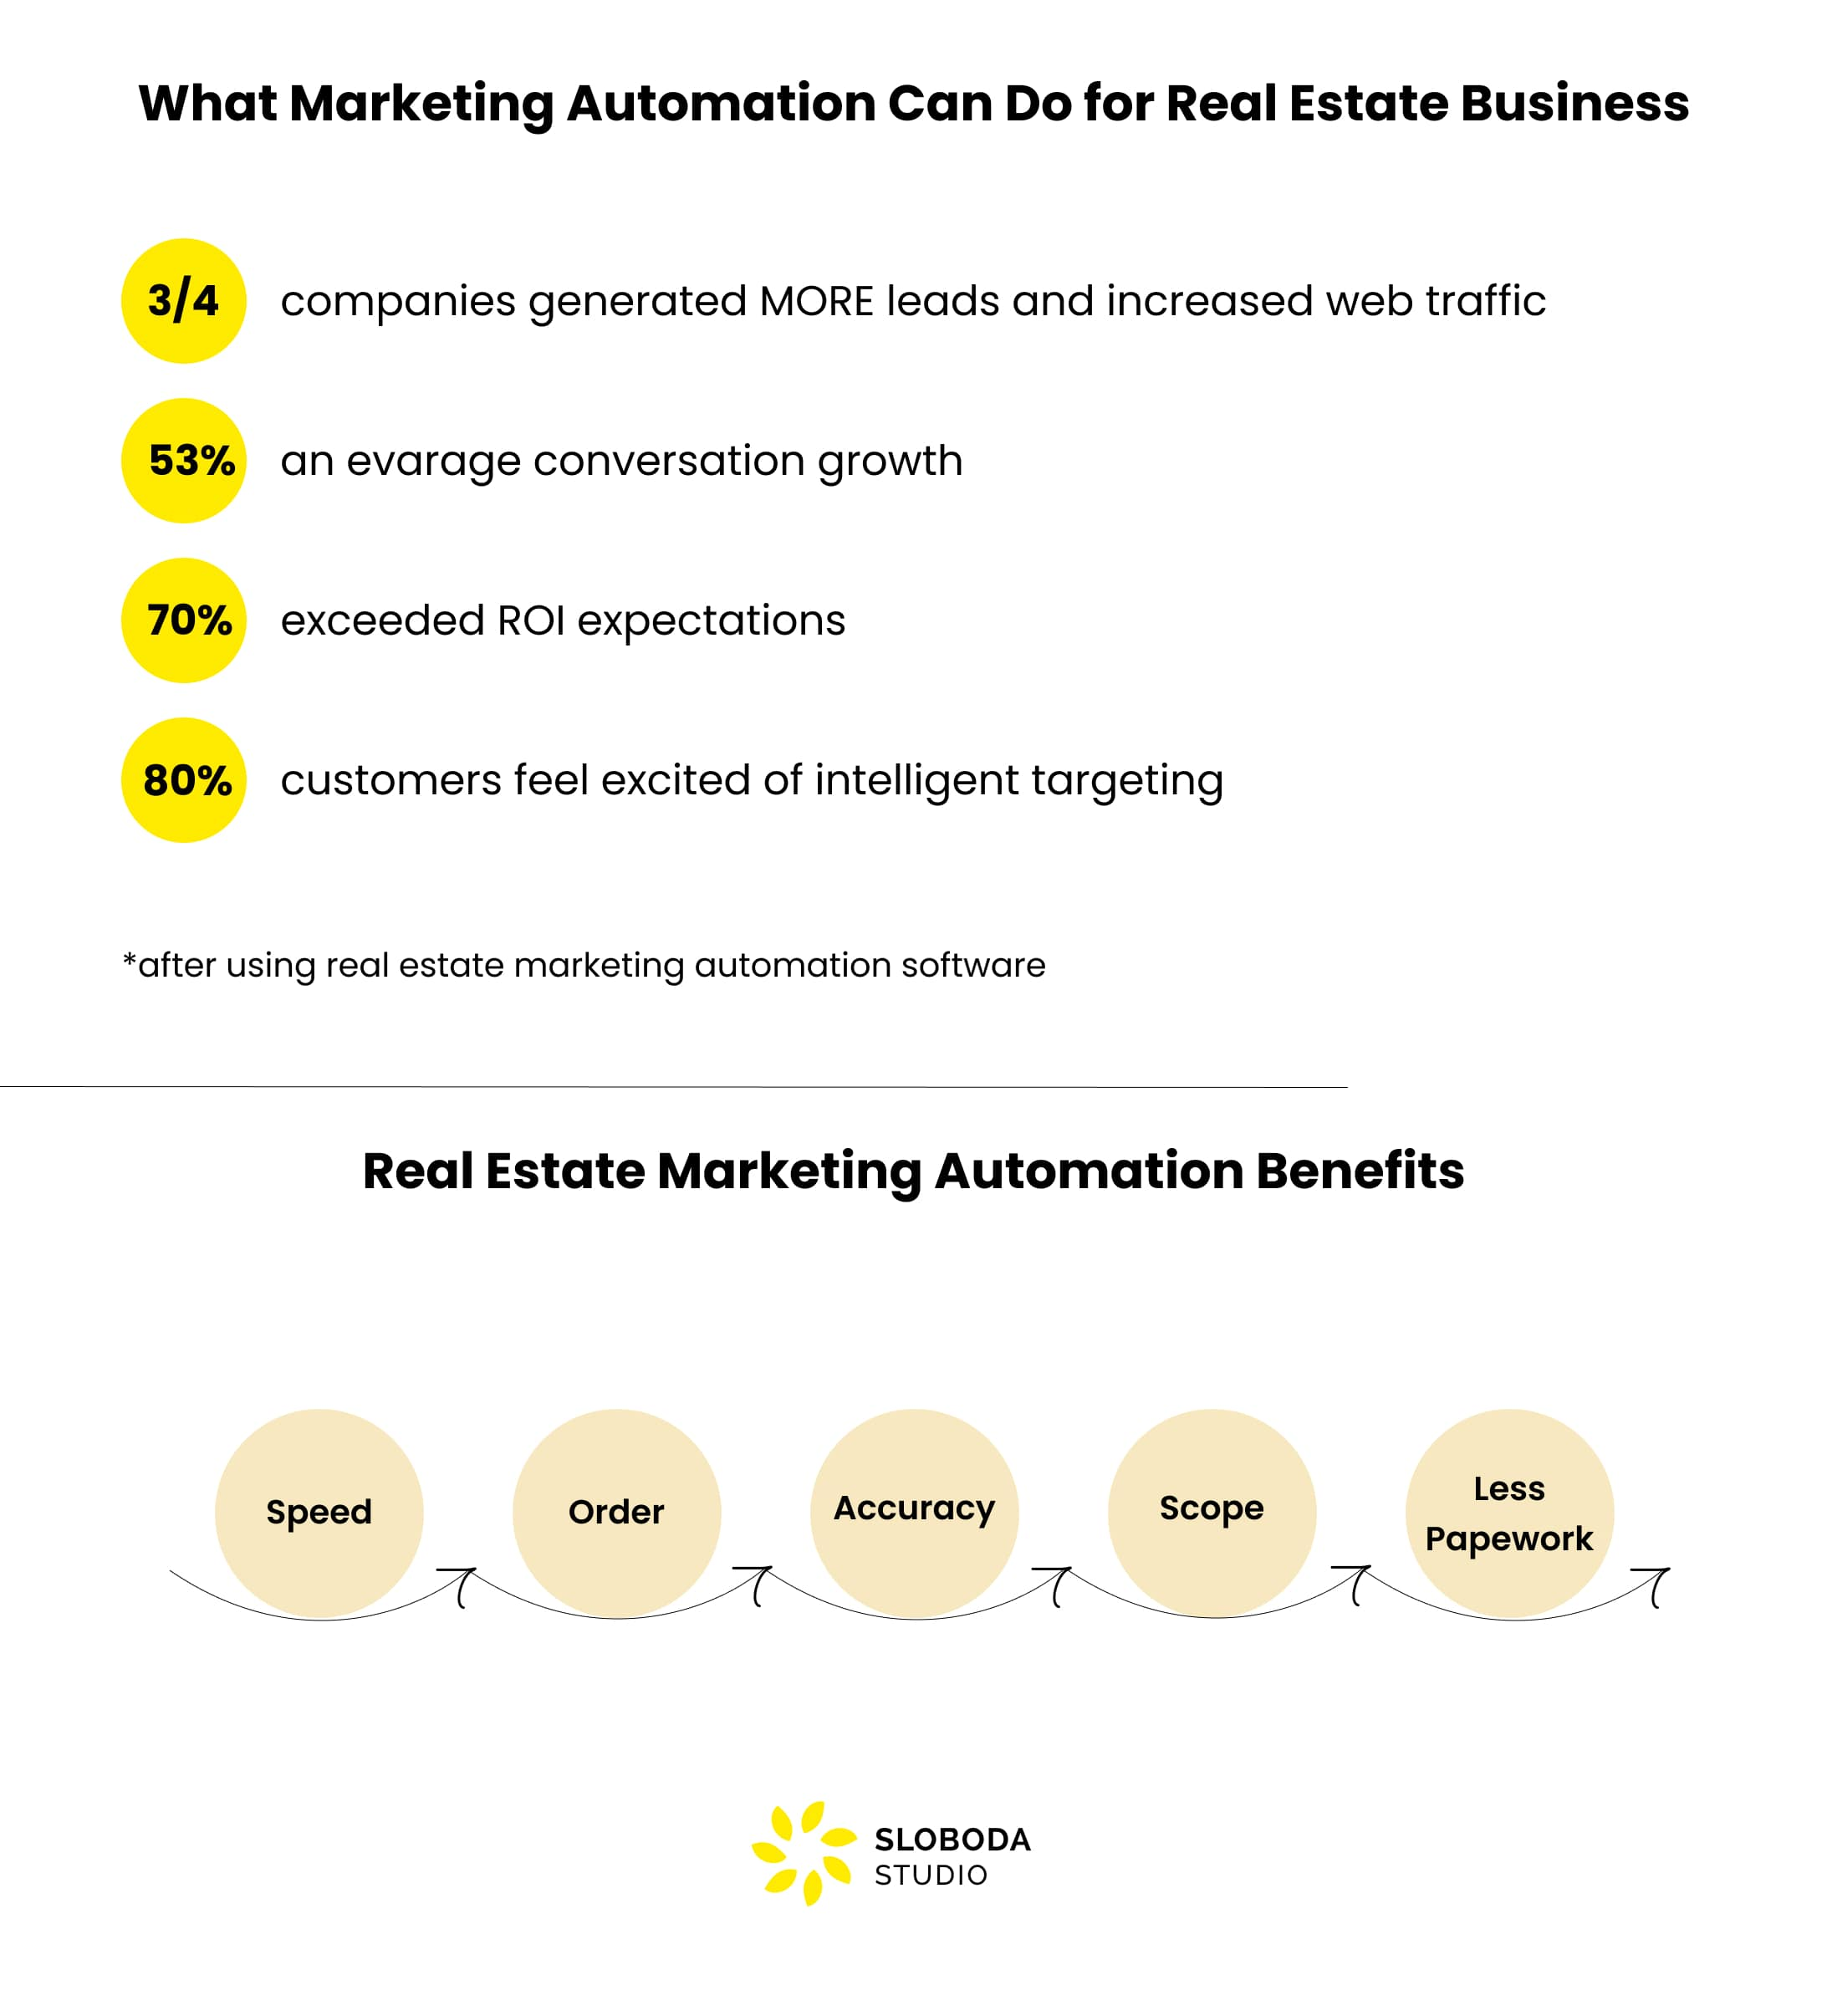 how marketing automation helps RE businesses